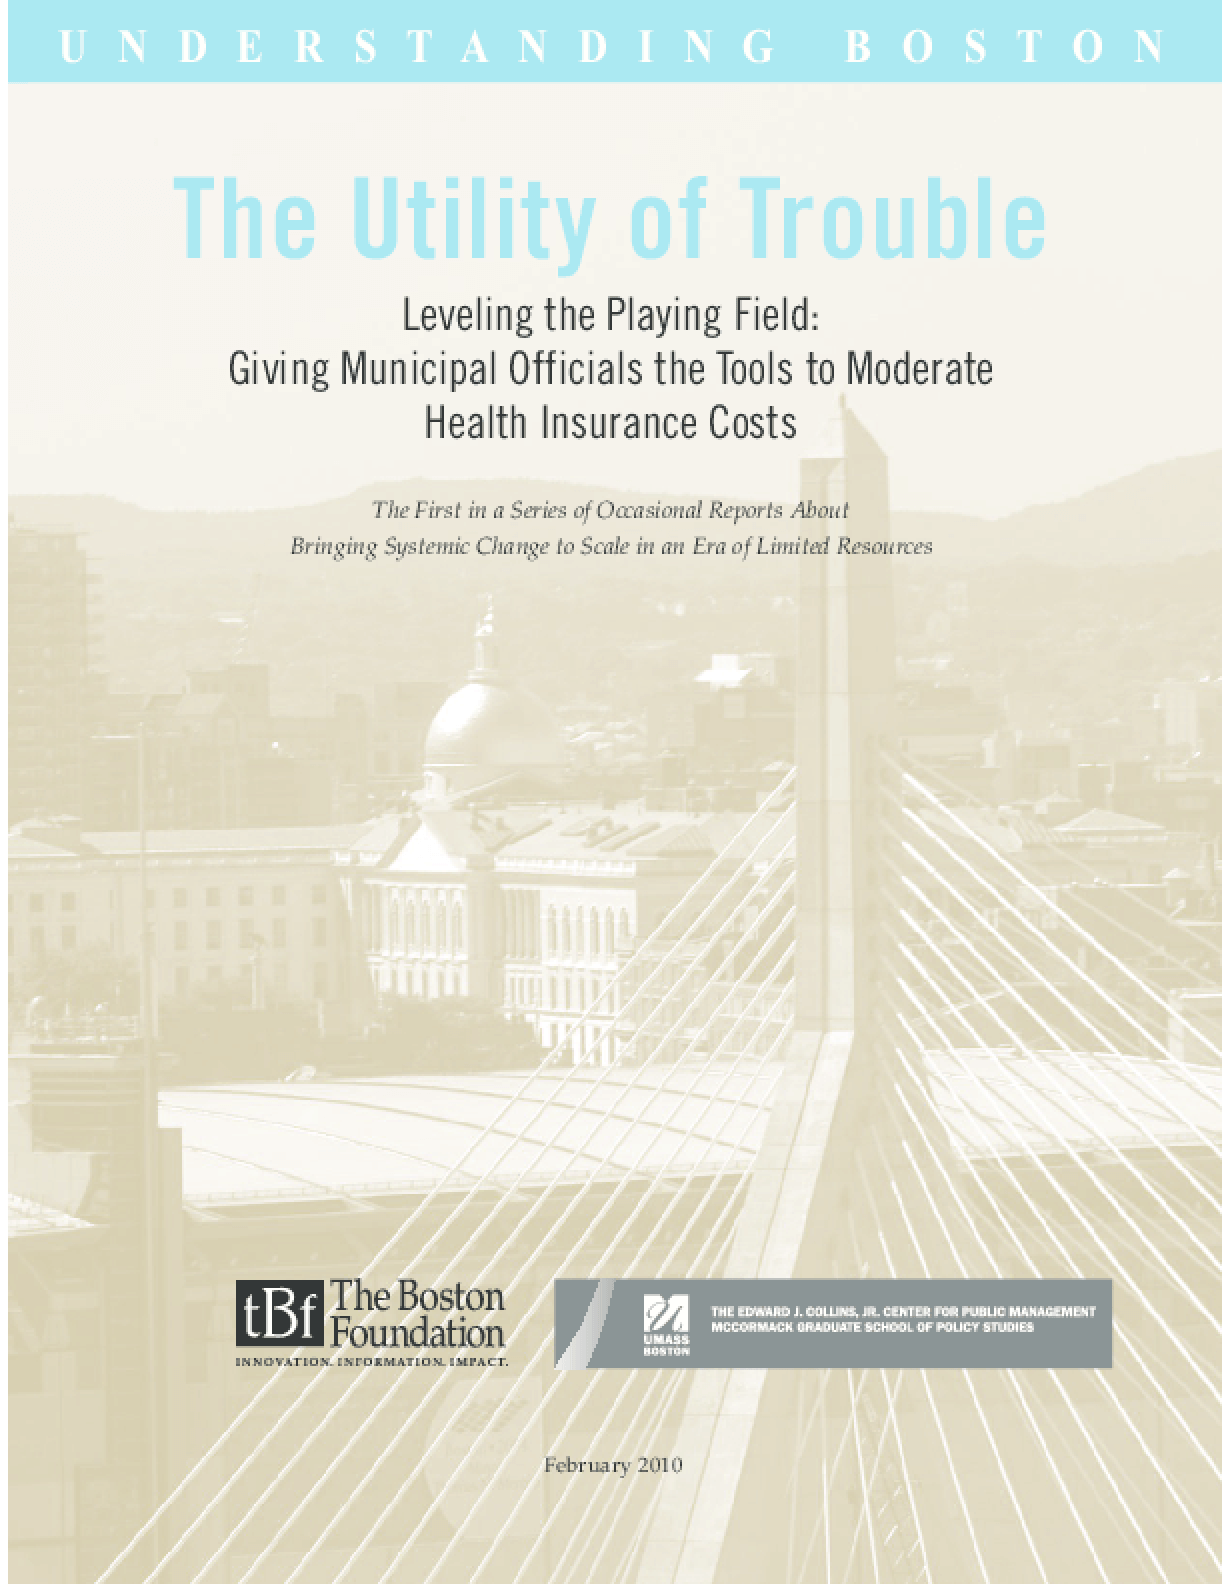 The Utility of Trouble: Leveling the Playing Field: Giving Municipal Officials the Tools to Moderate Health Insurance Costs